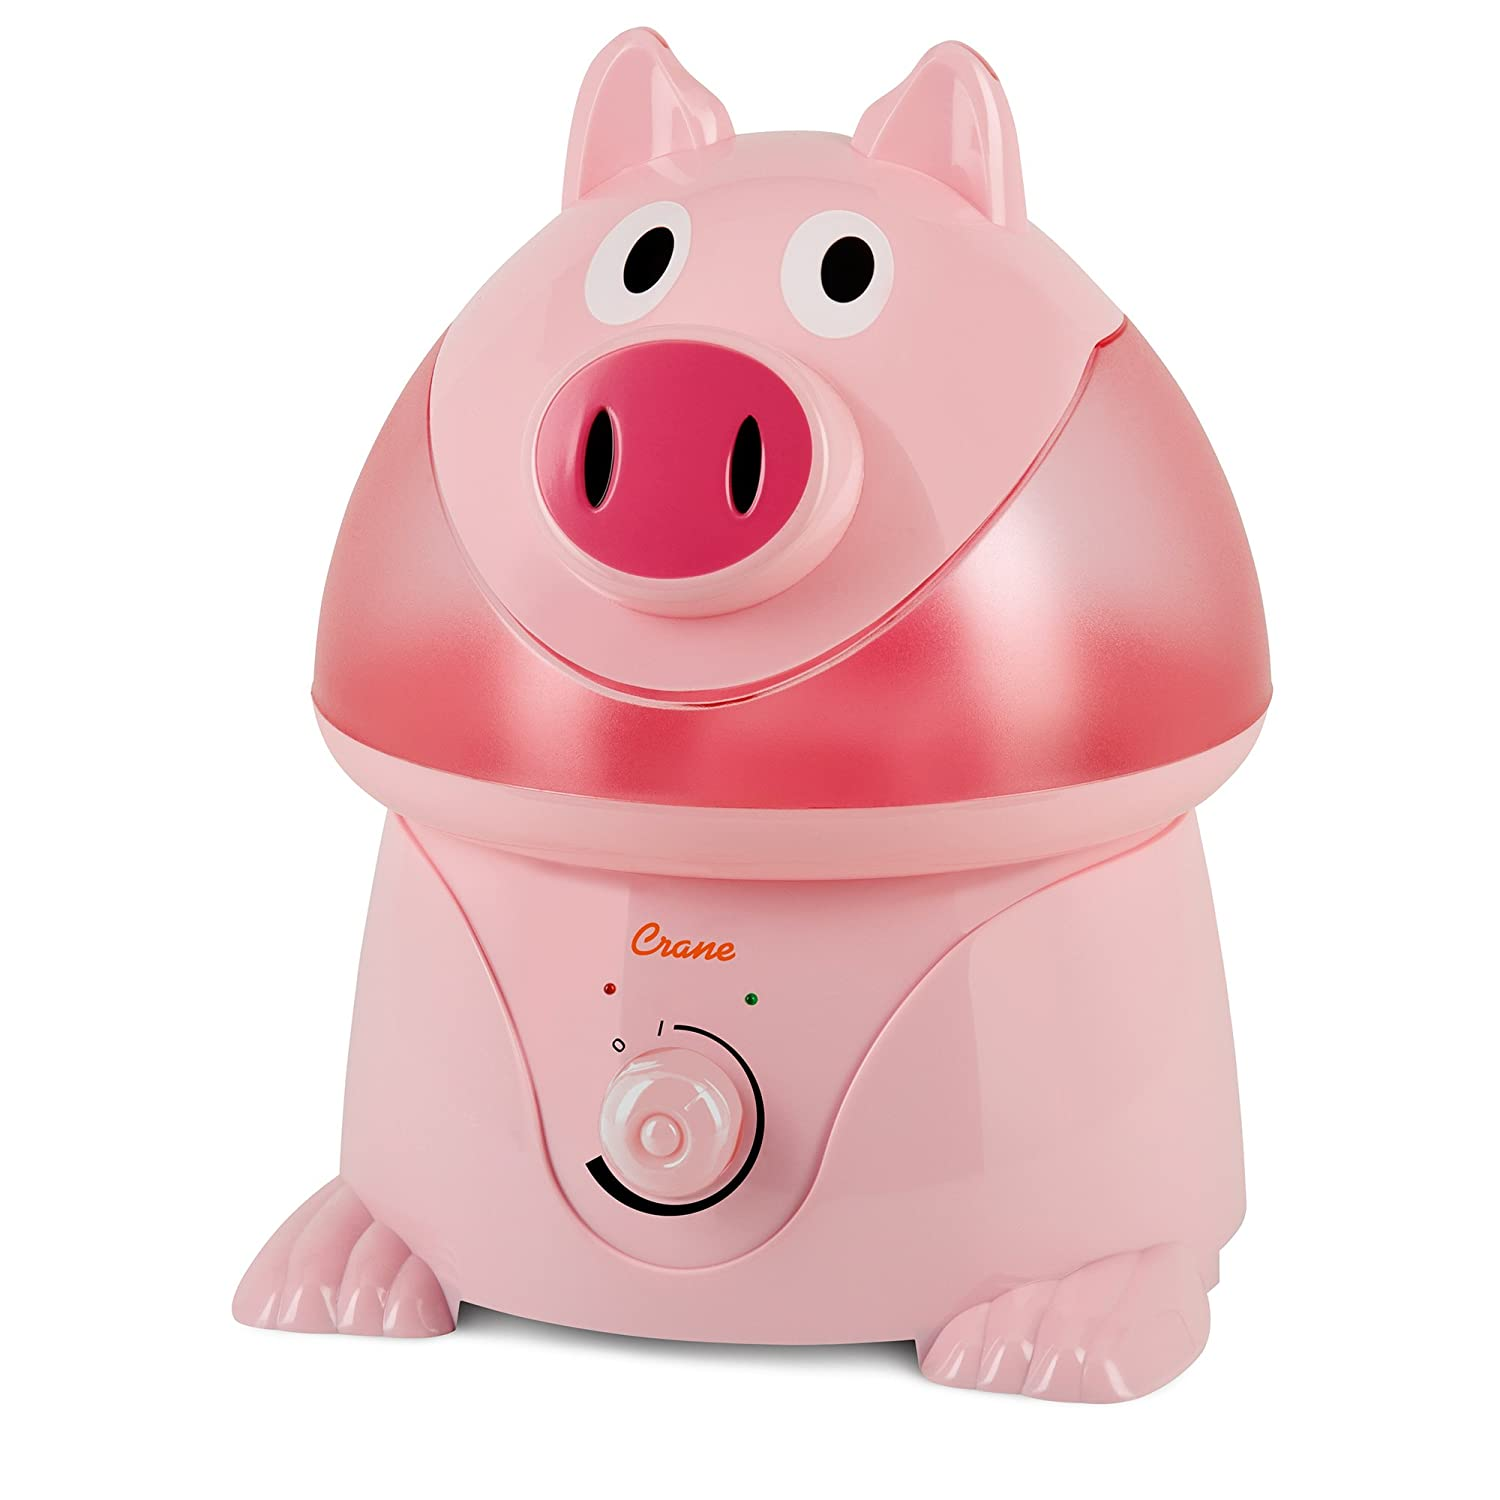 Crane EE-4139 Pig Air Humidifier